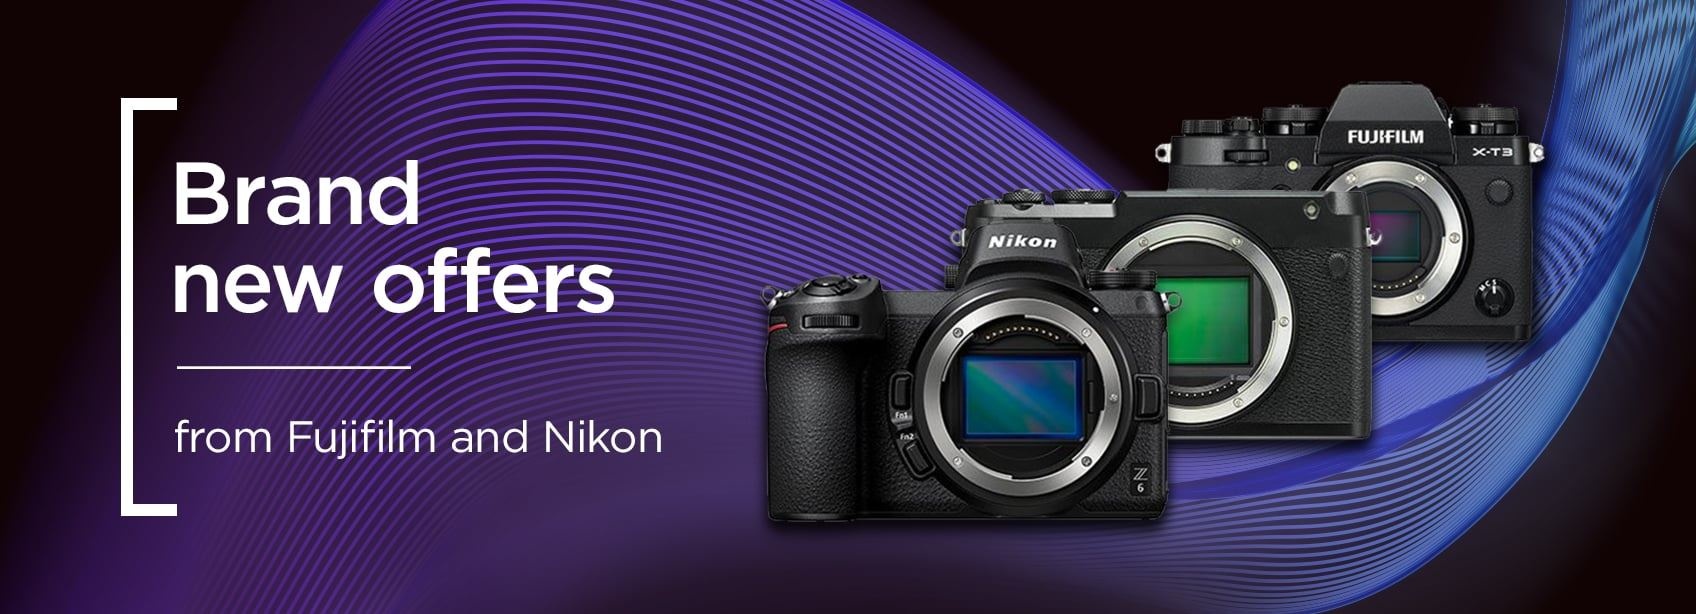 wex-photo-video-Nikon-Fujifilm-offers-LPHeader-14.10.19.jpg